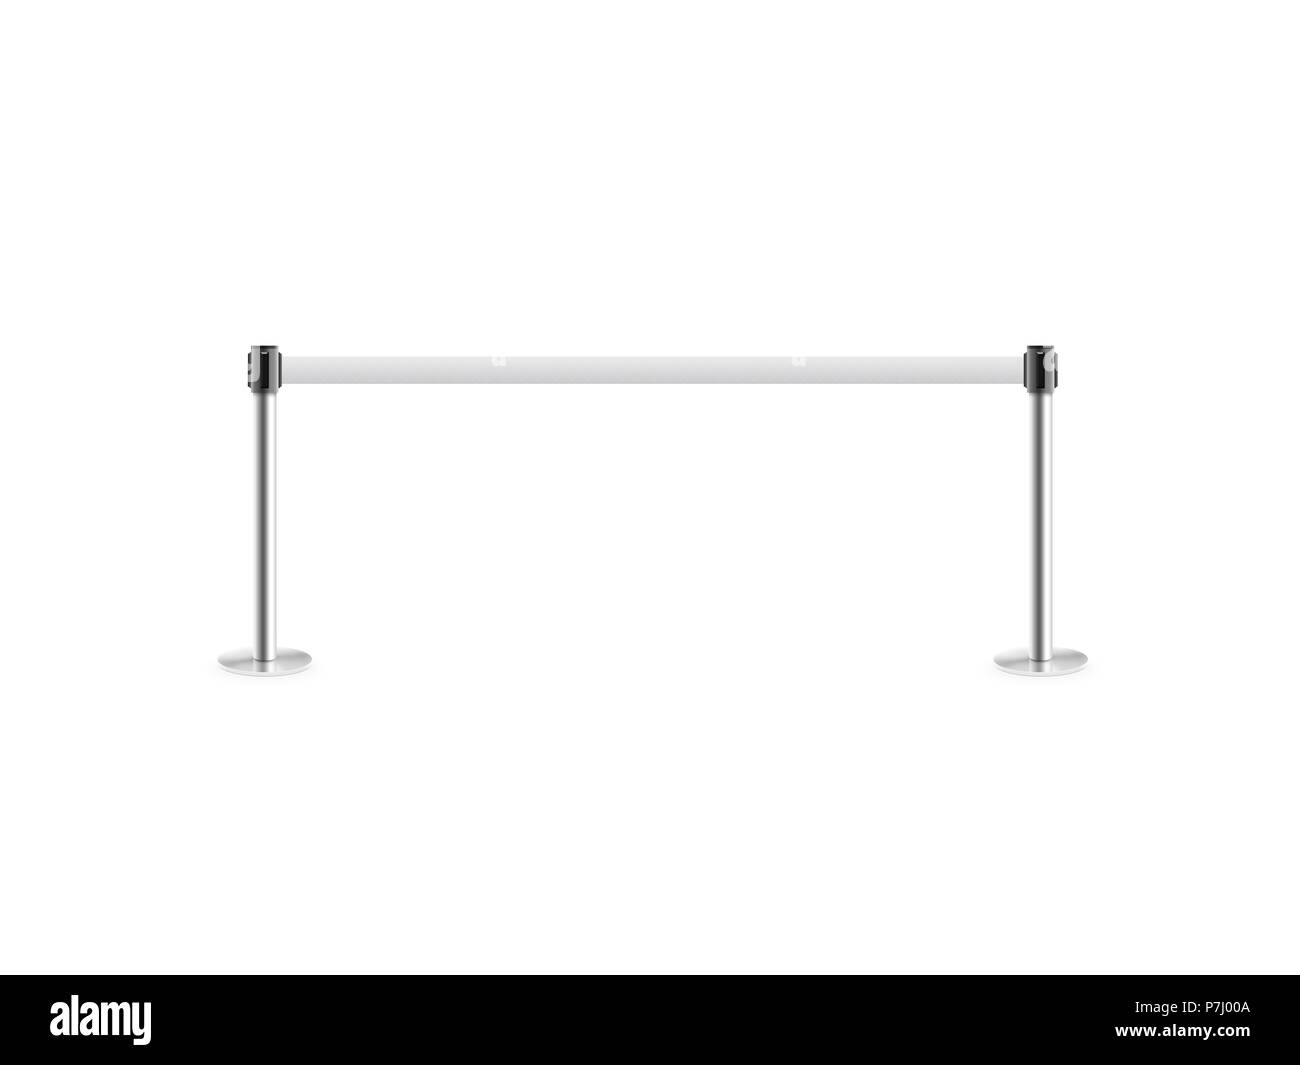 Mobile fence barrier stand isolated on white. Fencing barricade on metal chrome pole posts. Portable protective rack with ribbon stretch tape. Blank post fencing barrier belt rope. - Stock Image